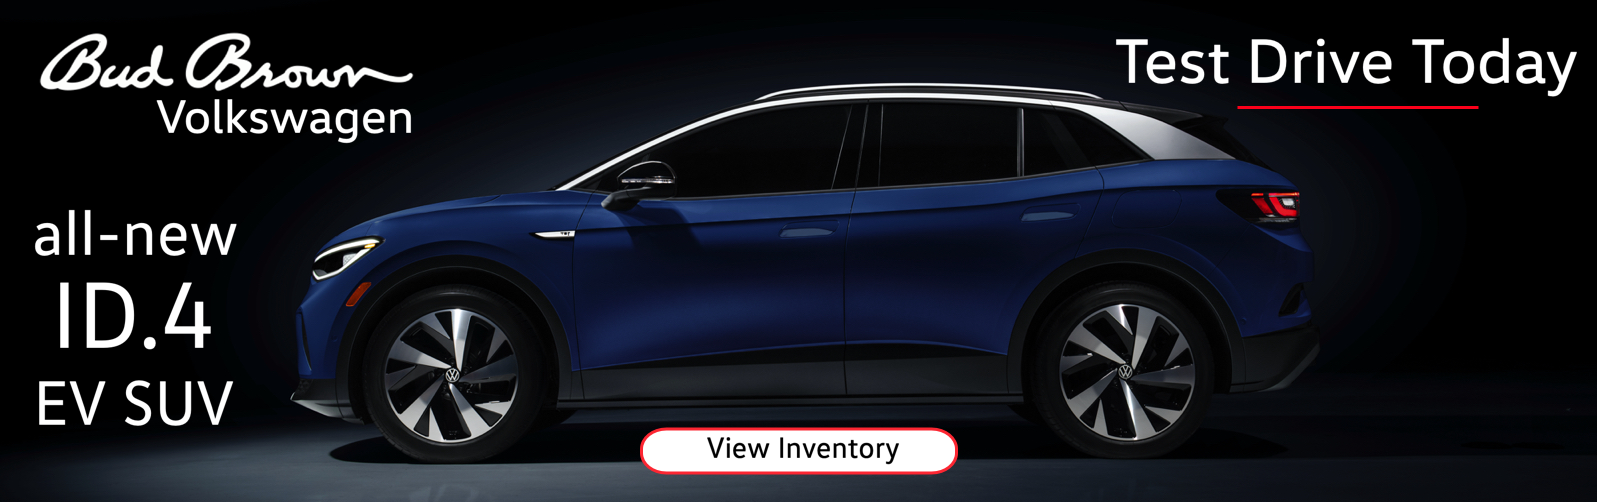 all-new ID.4 Electric SUV in Stock Now